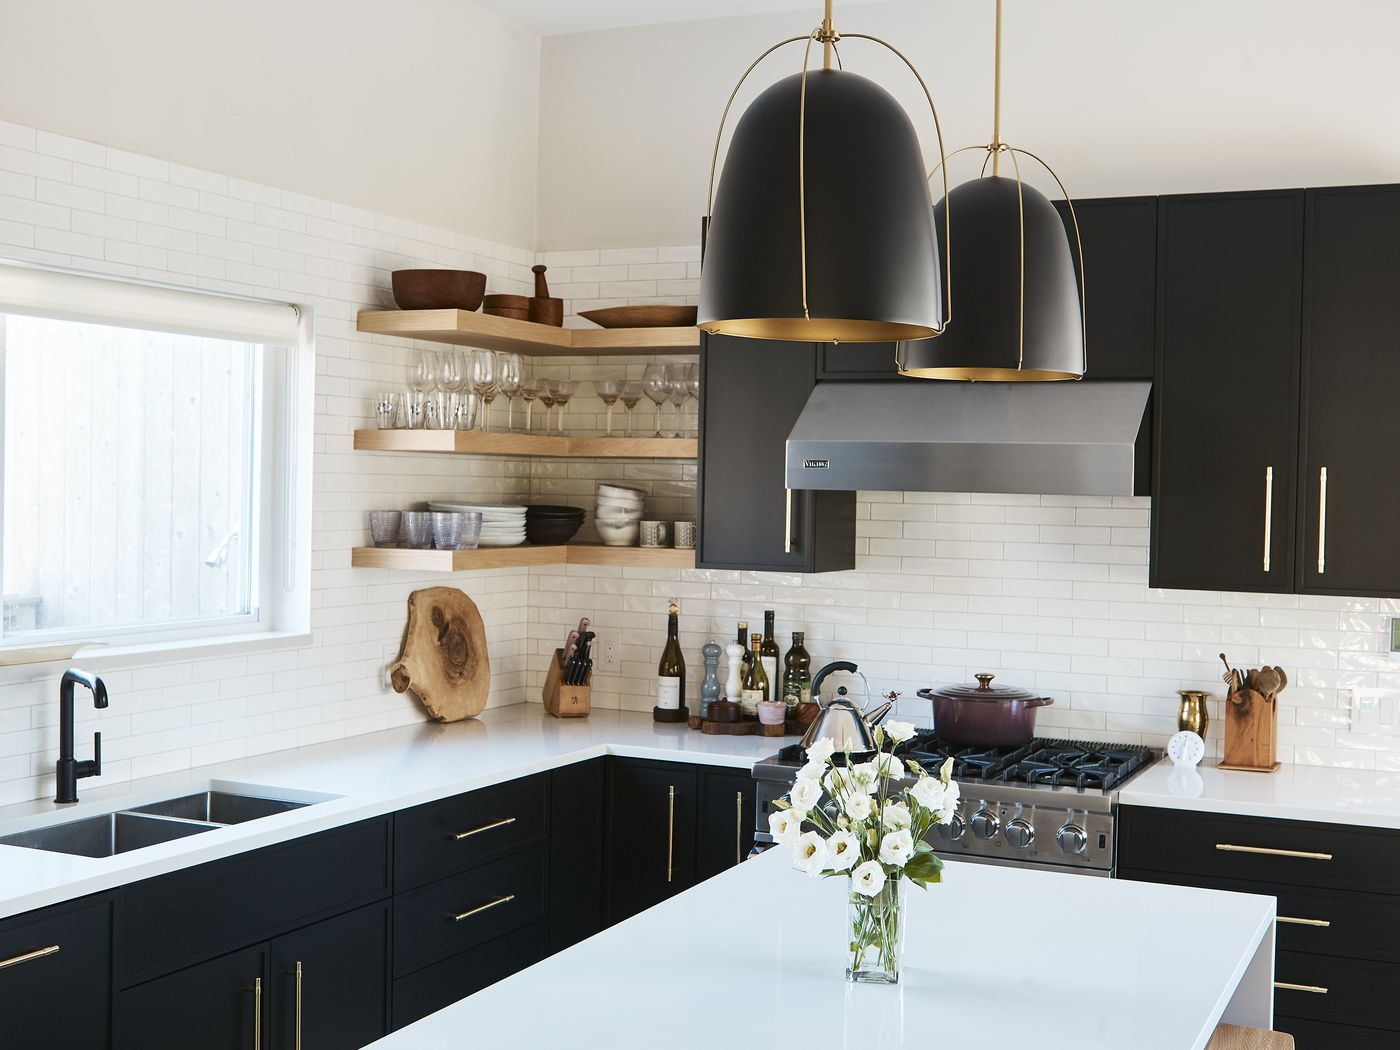 Find other ways to save on your kitchen remodel